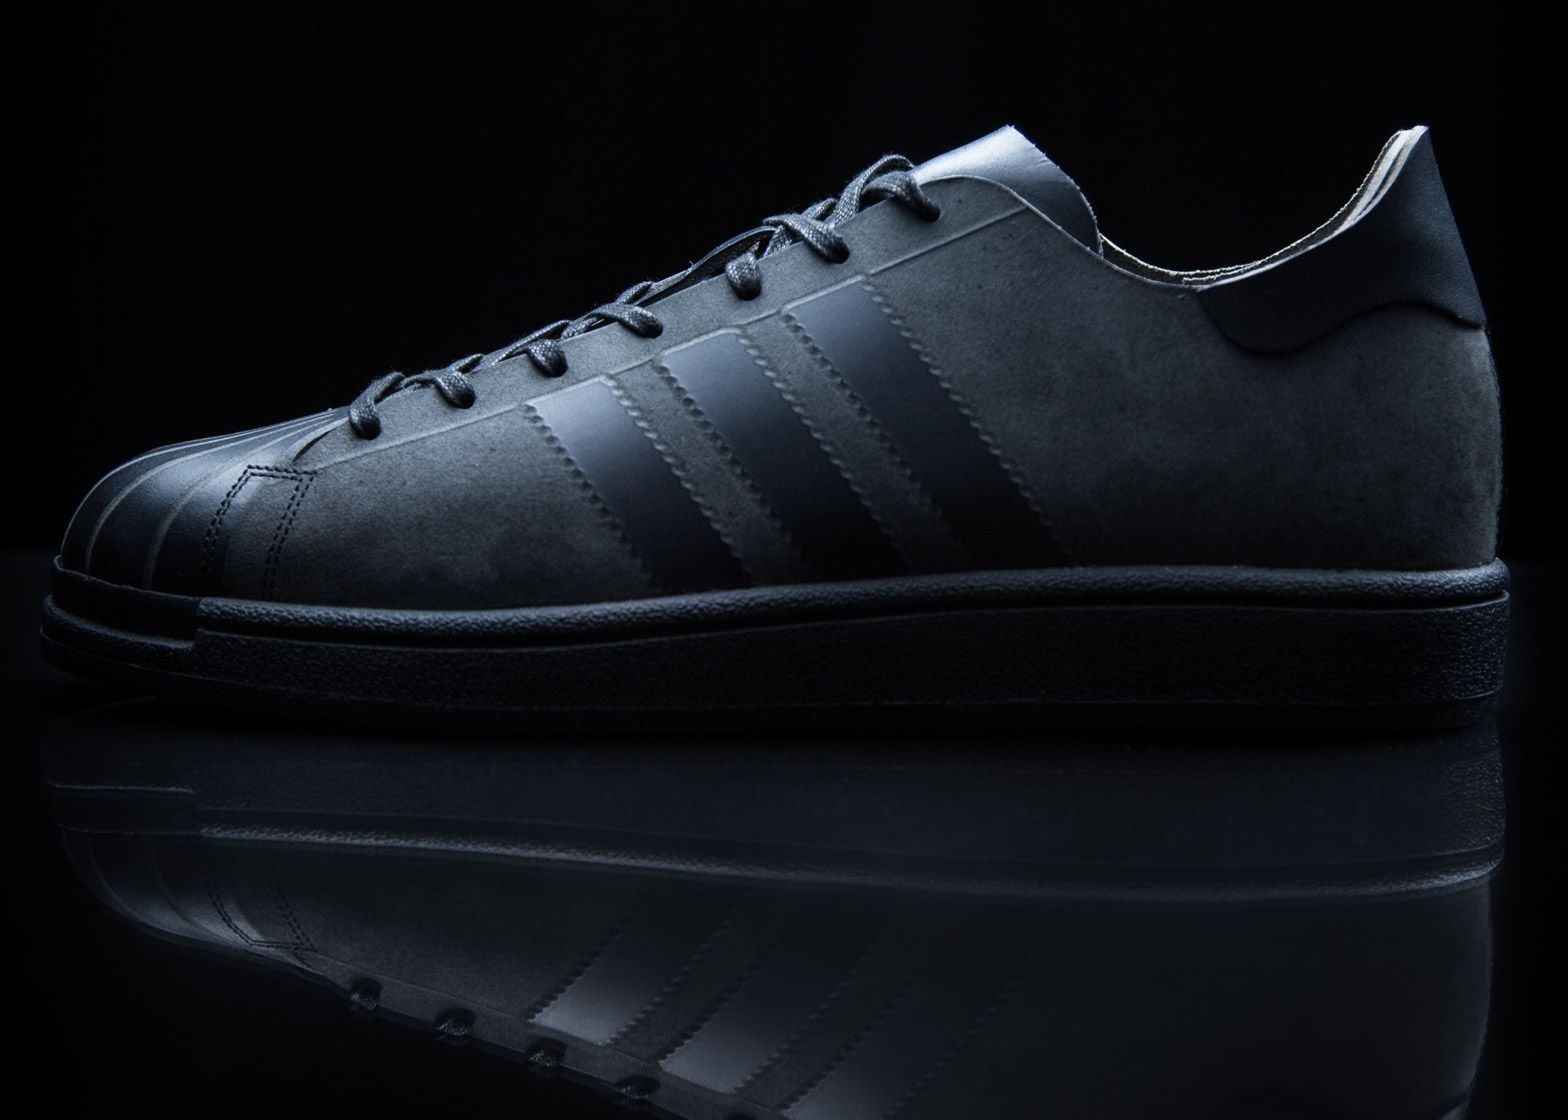 Alexander Taylor mills leather to create limited-edition shoe for Adidas.